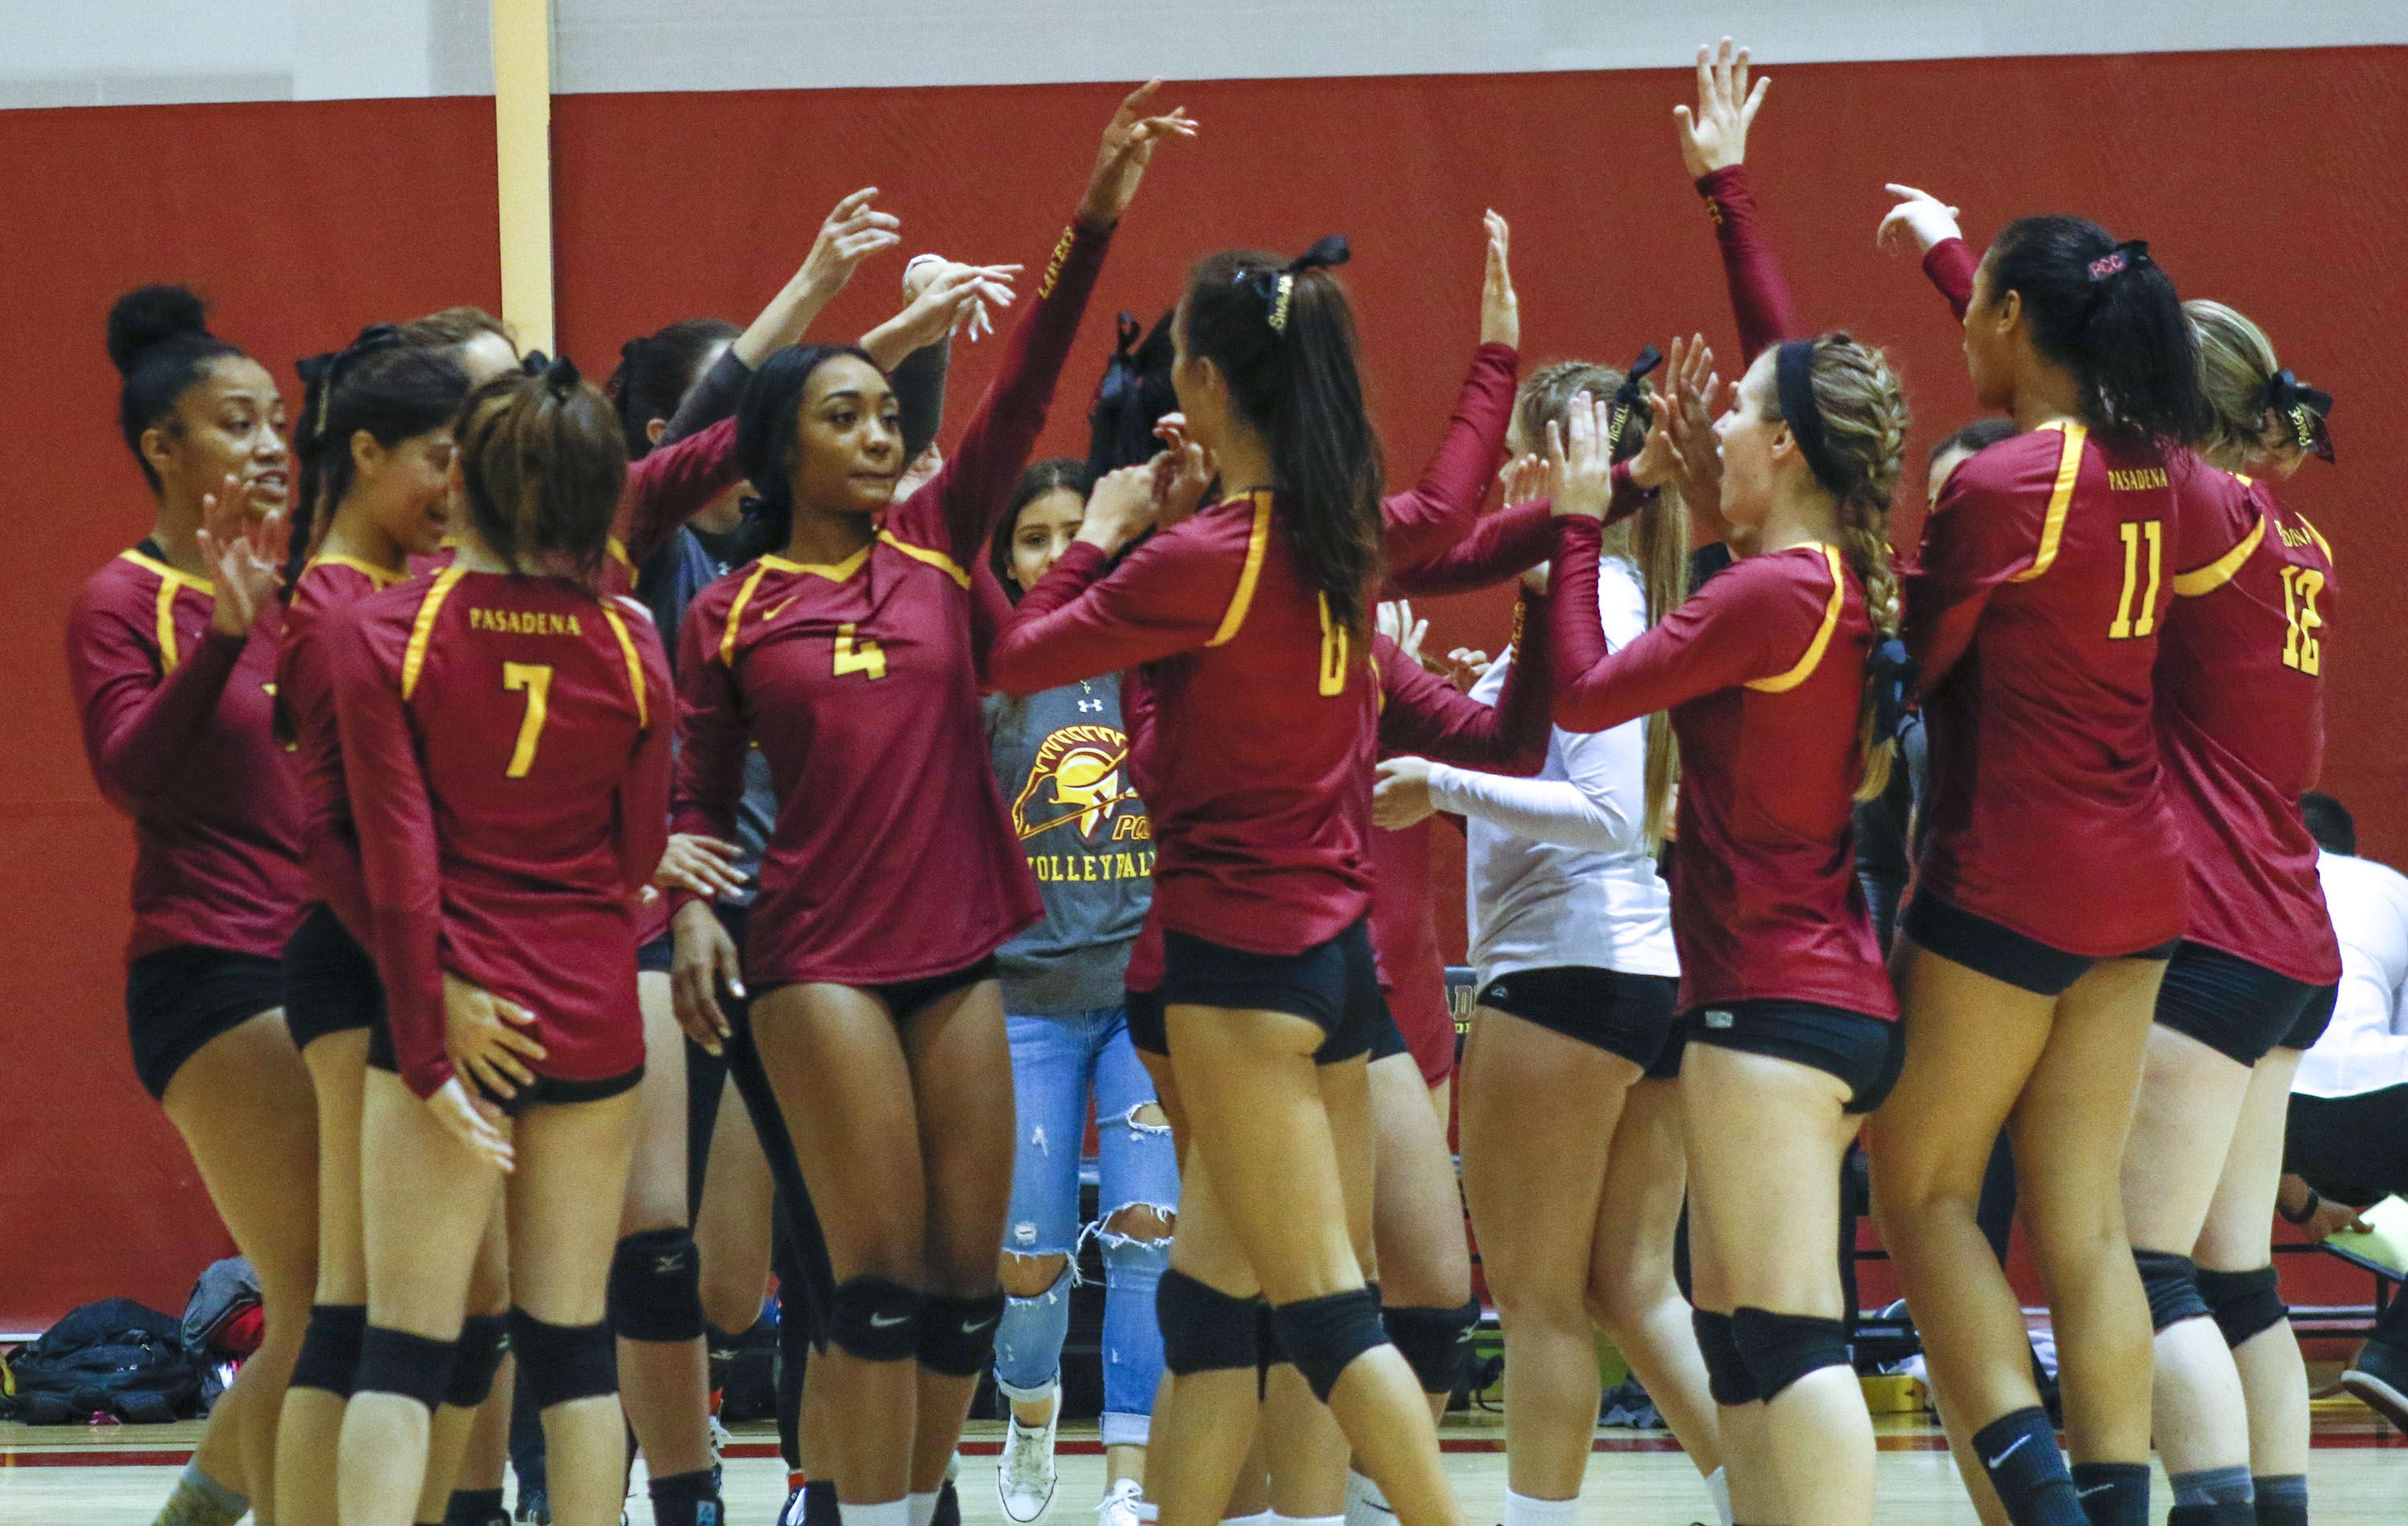 volleyball1_carrillo_11032016.jpg